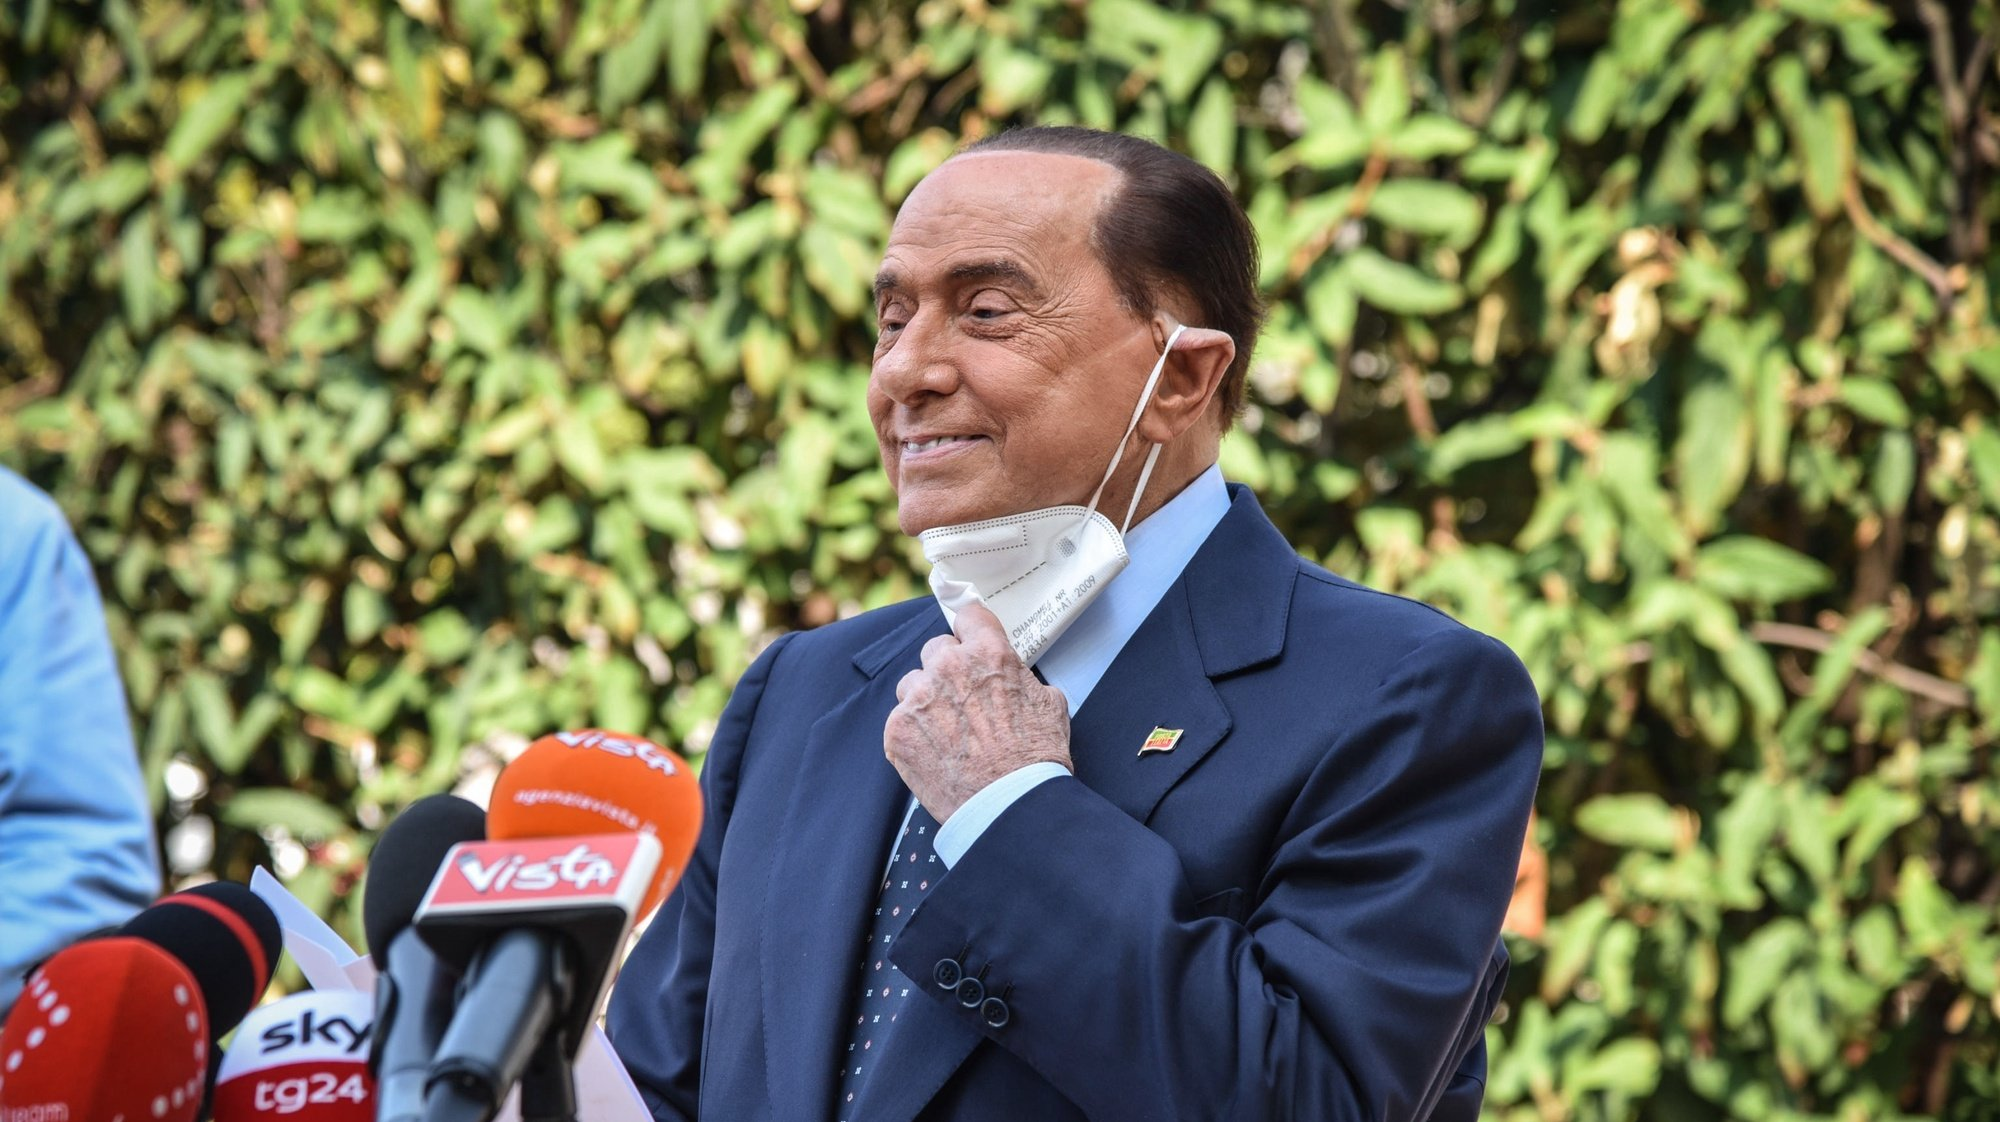 epa08667964 Former Italian prime minister Silvio Berlusconi speaks to the media as he leaves San Raffaele hospital in Milan, Italy, 14 September 2020. Silvio Berlusconi said suffering from COVID-19 was 'the most dangerous ordeal of my life', as he was discharged from Milan's San Raffaele hospital on 14 September. Berlusconi was hospitalized on 04 September with COVID-related bilateral pneumonia.  EPA/MATTEO CORNER